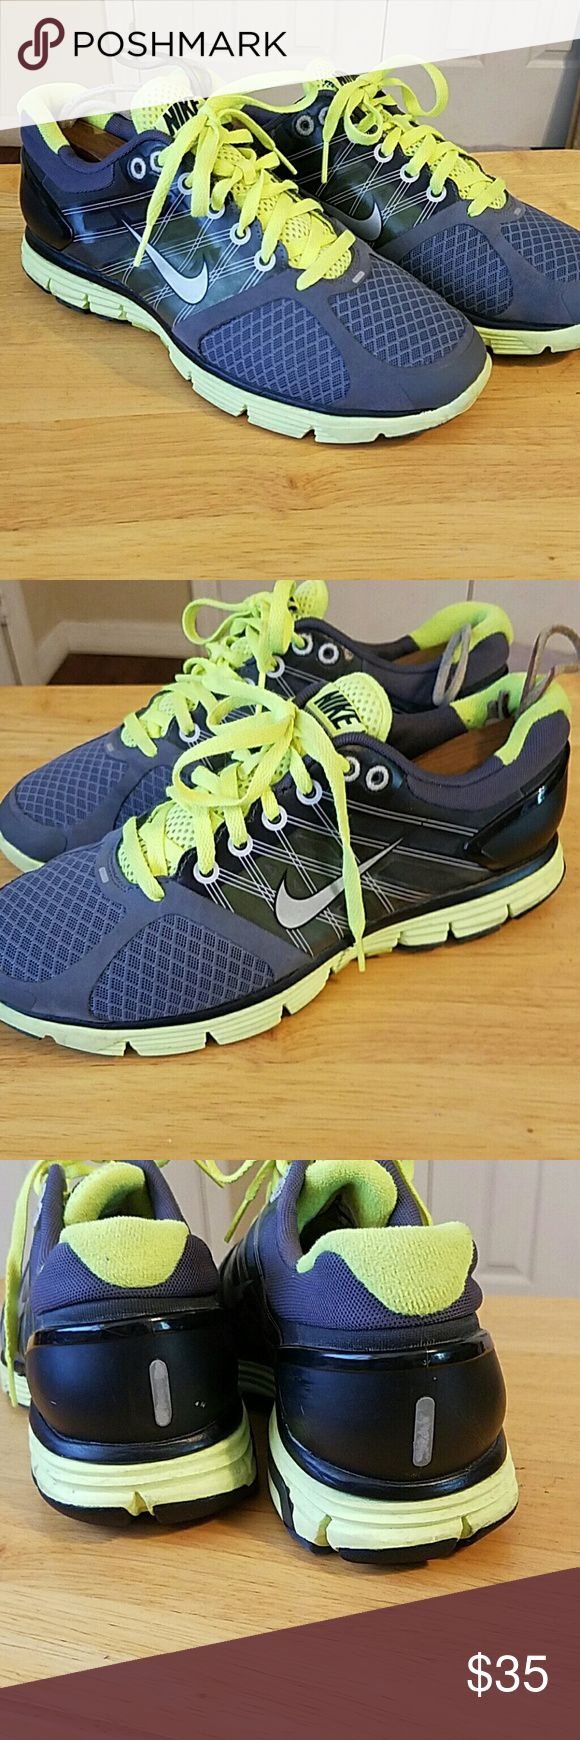 Nike Lunarglide 2 size 7 ladies /youth Nike Lunargline 2's in GUC tons of life left pictures don't do them justice, reasonable offers considered. Color is Grey and florescent  green. Nike Shoes Athletic Shoes